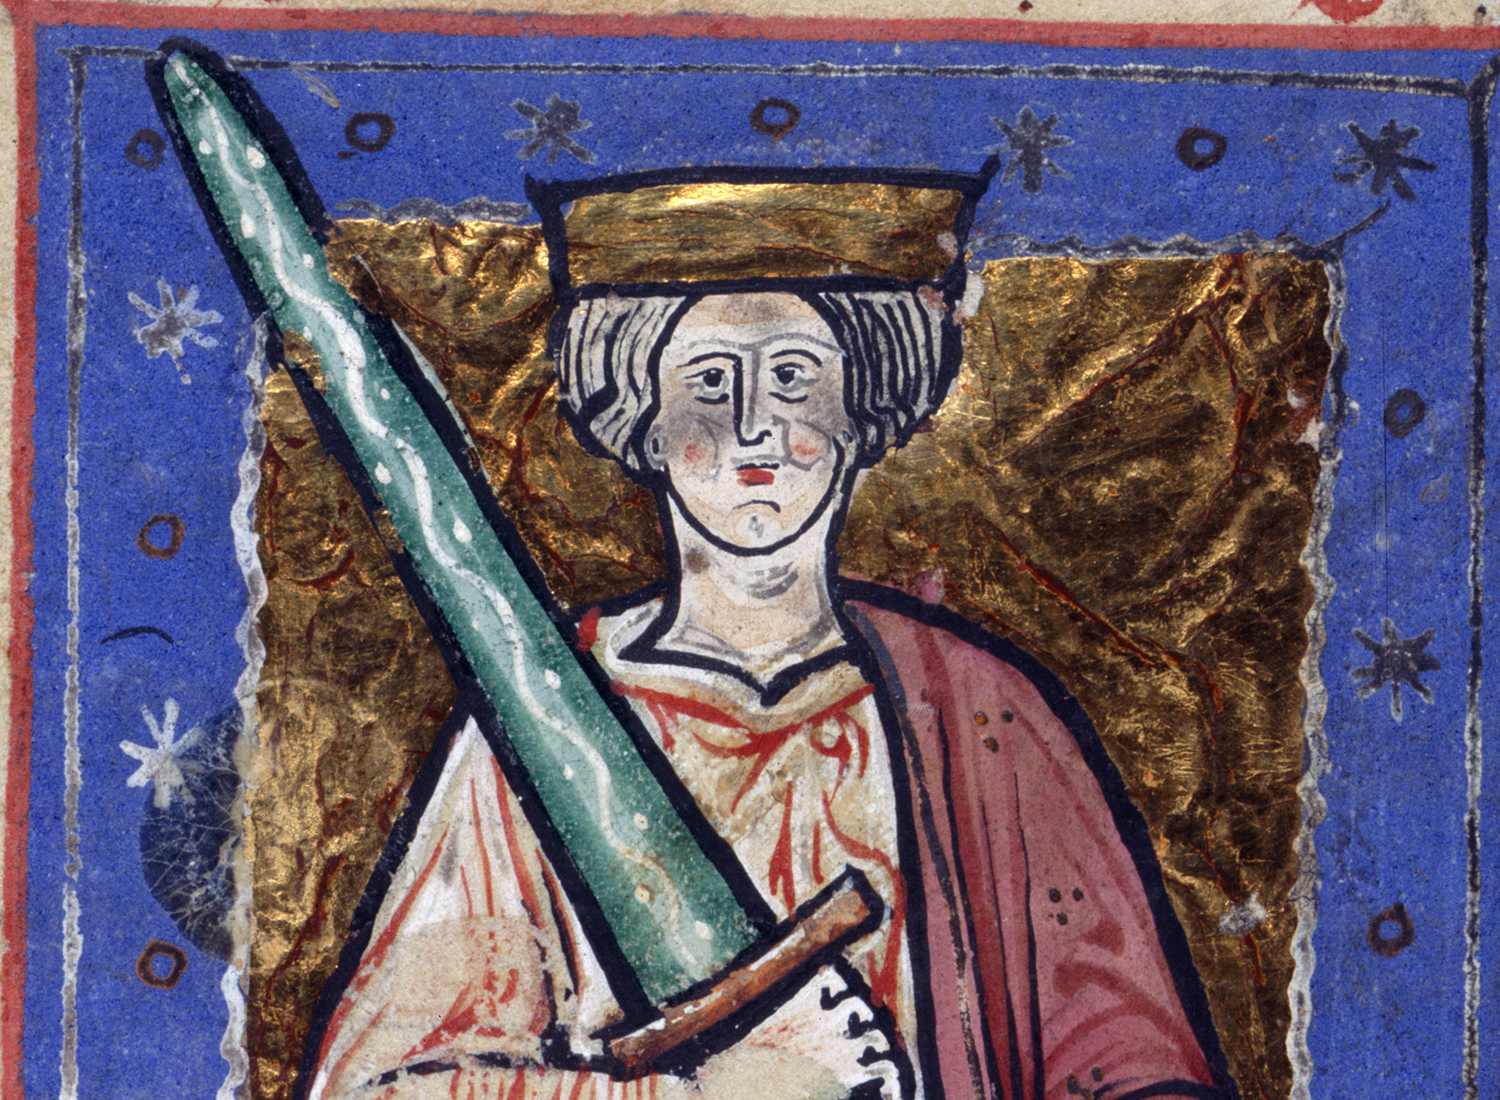 Portrait of Æthelred from the Abingdon Chronicle, c.1220.